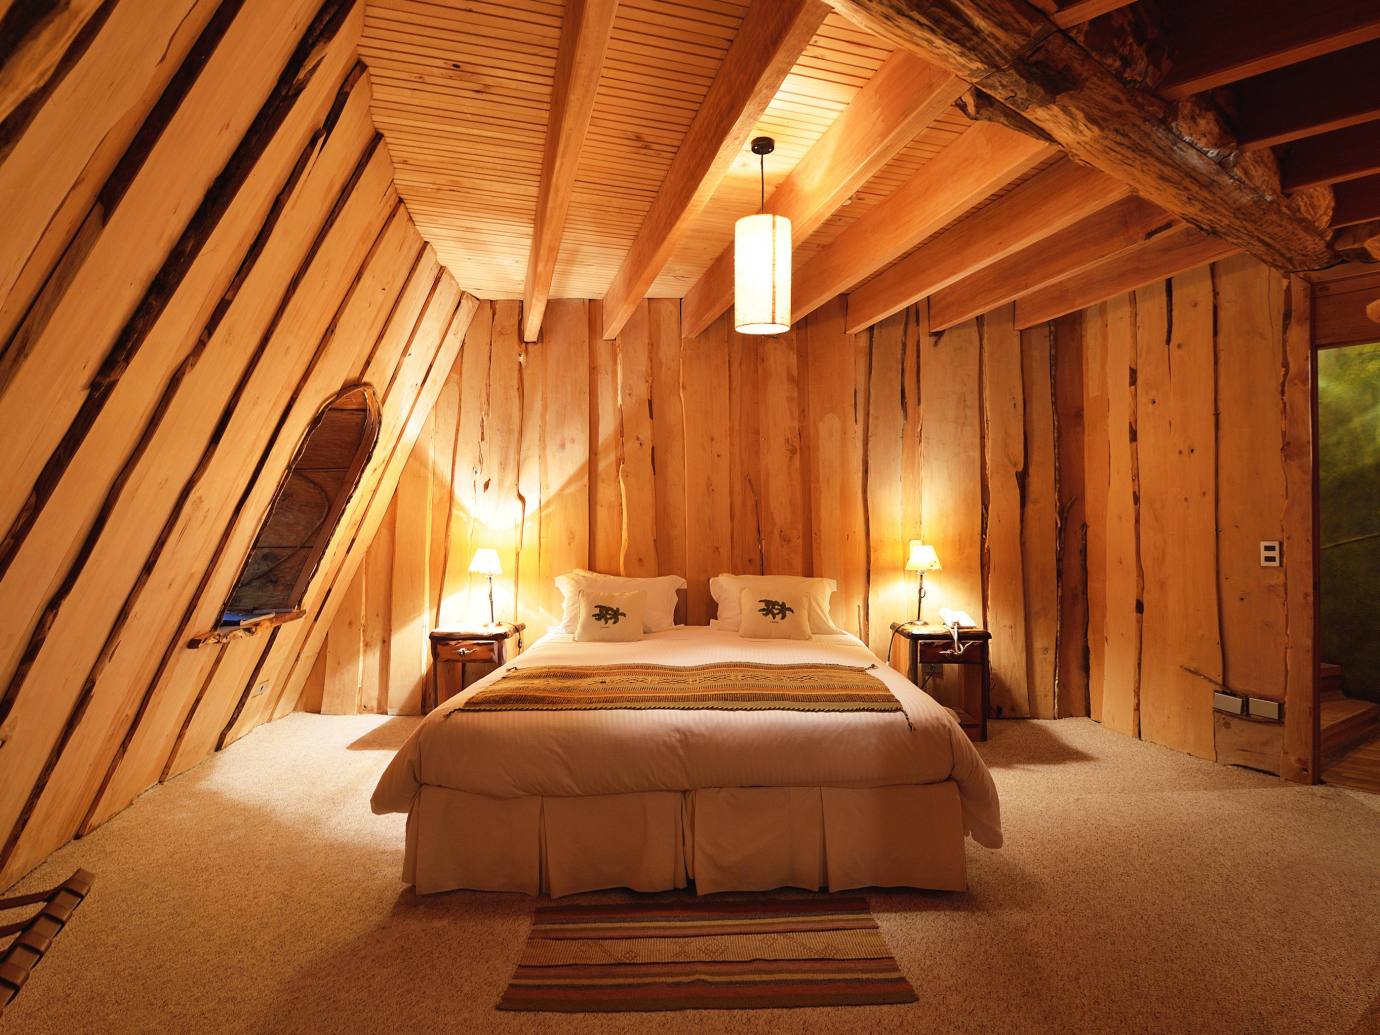 Wooden and warm room interior with queen sized bed